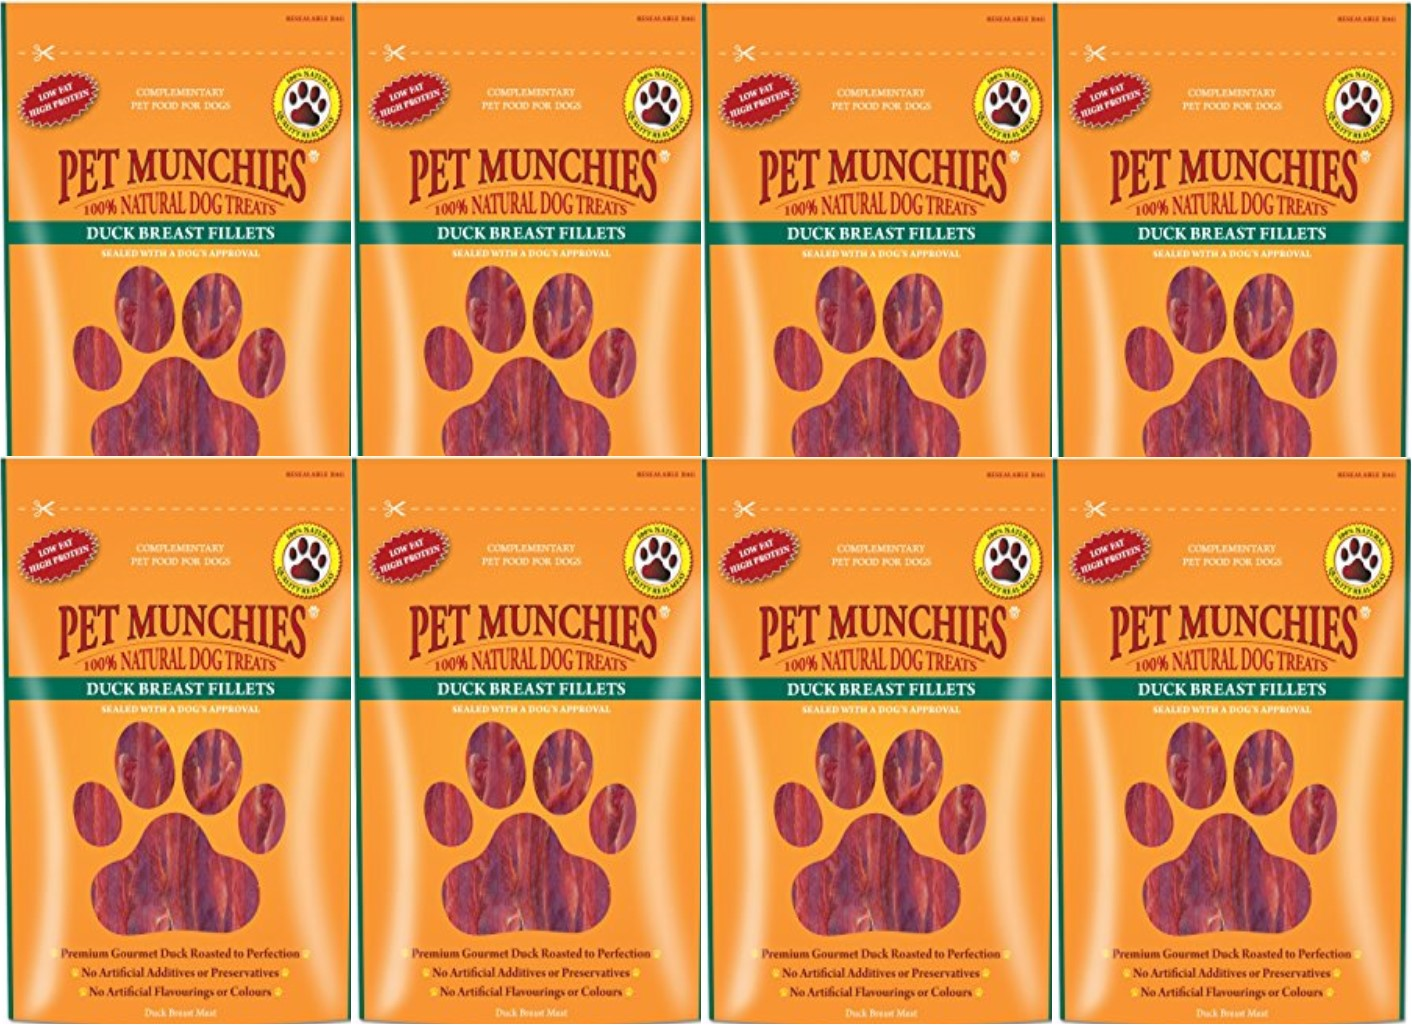 Pet Munchies Duck Breast Fillet 1 box of 8